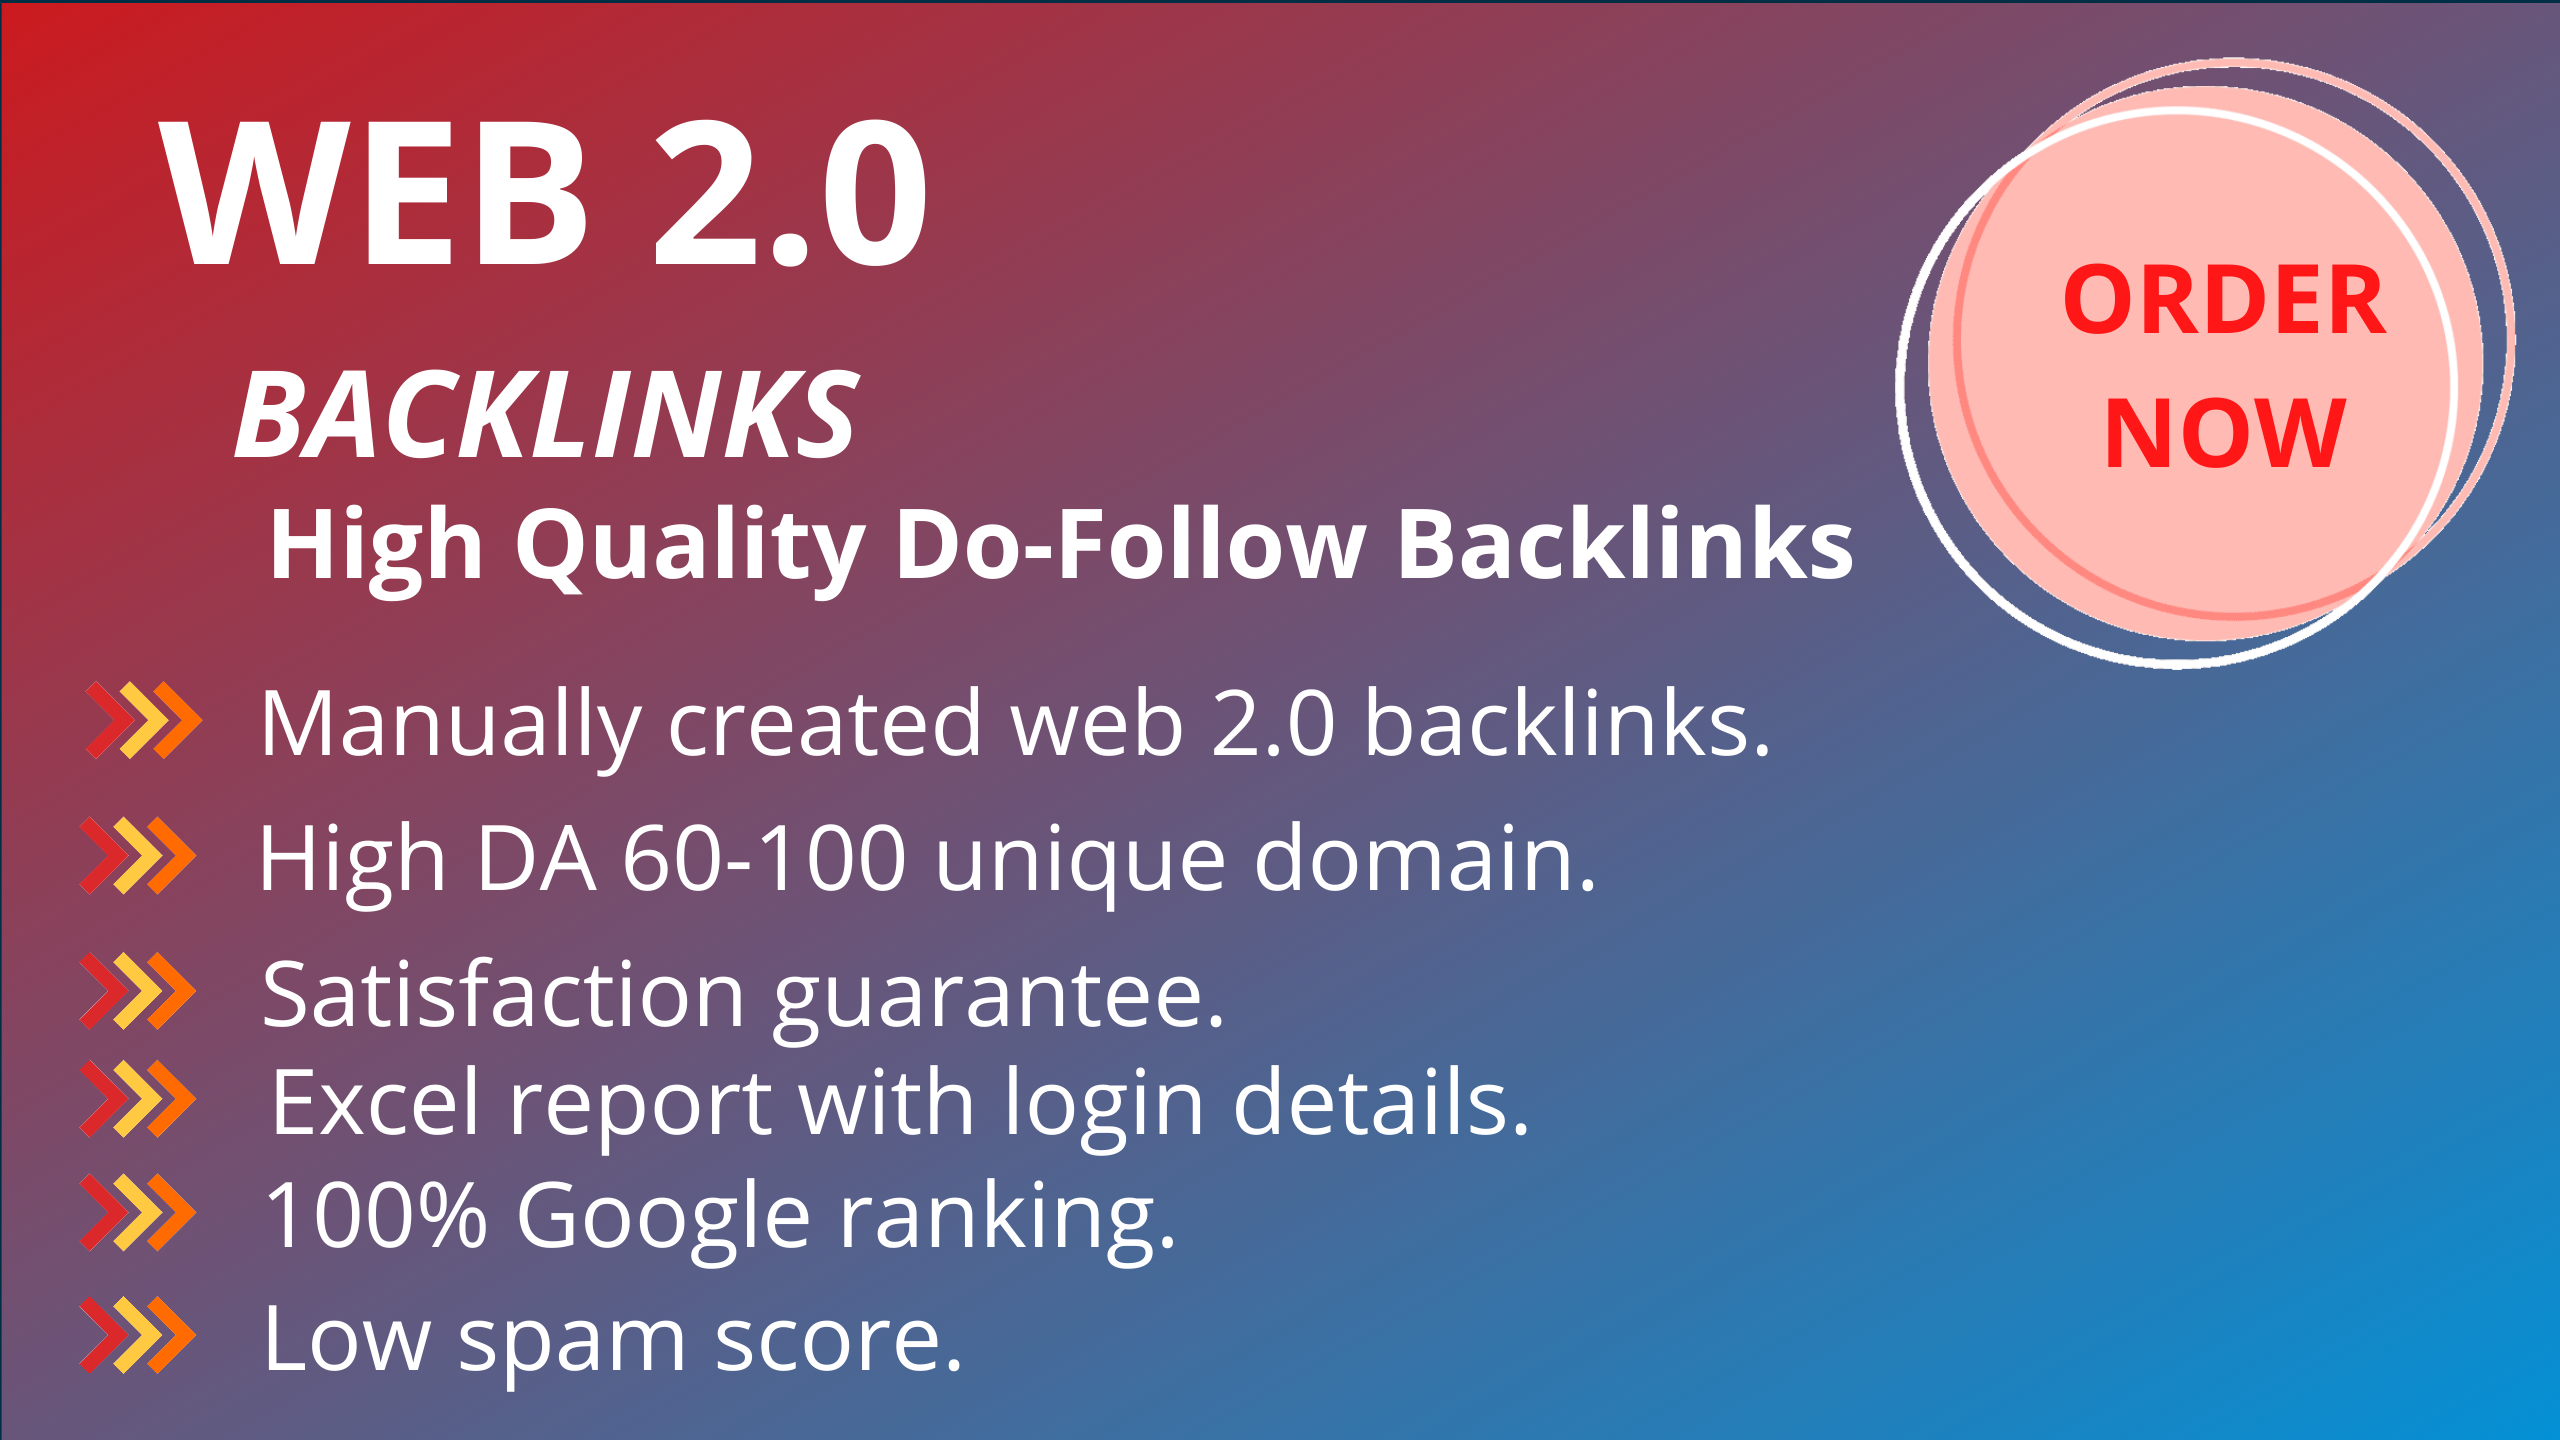 Create do-follow 50 high authority web 2.0 backlinks manually